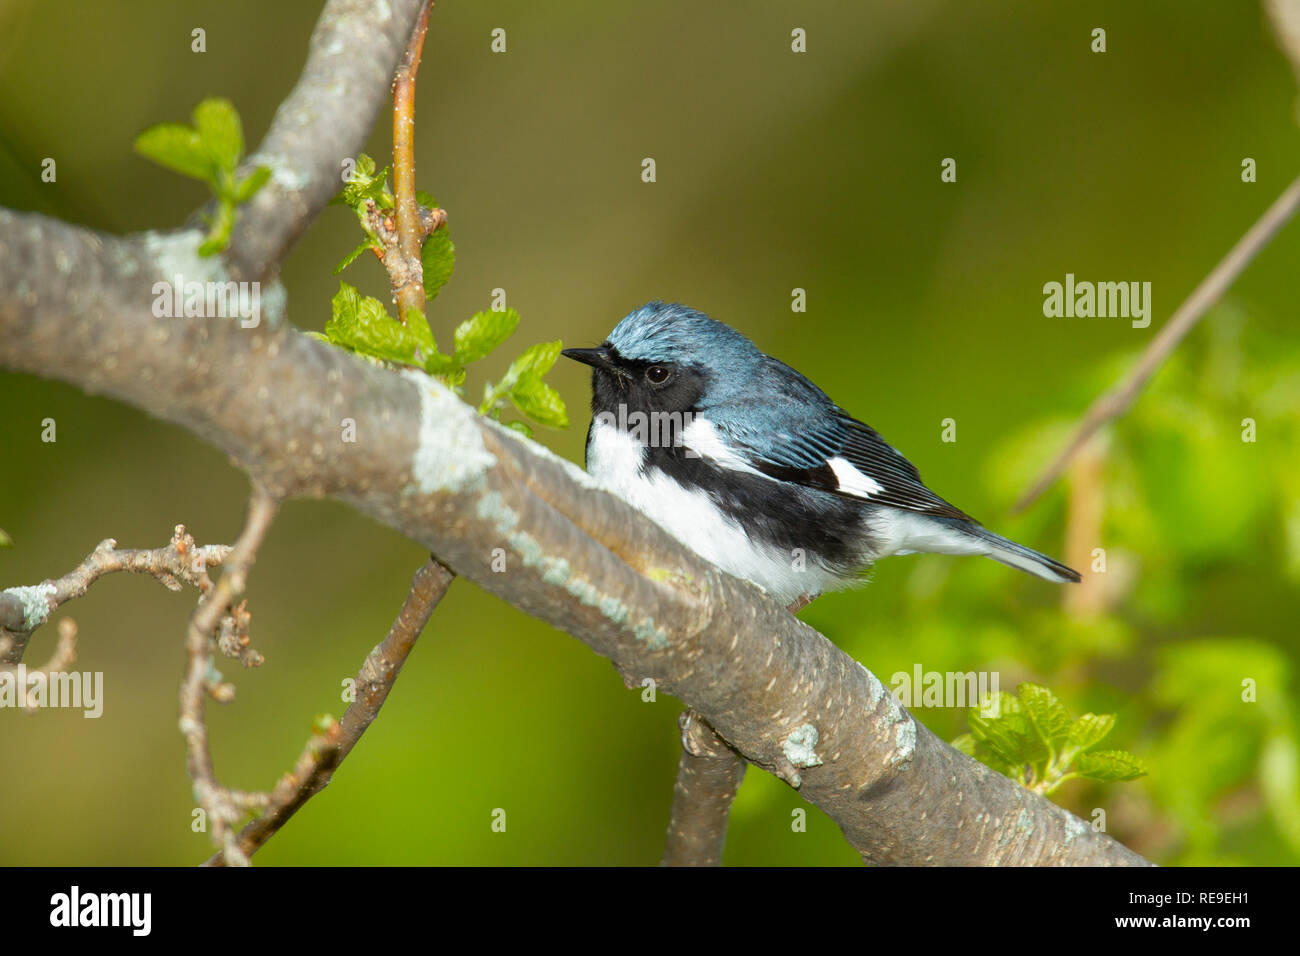 Black-throated Blue Warbler (Dendroica caerulescens), male, breeding plumage - Stock Image